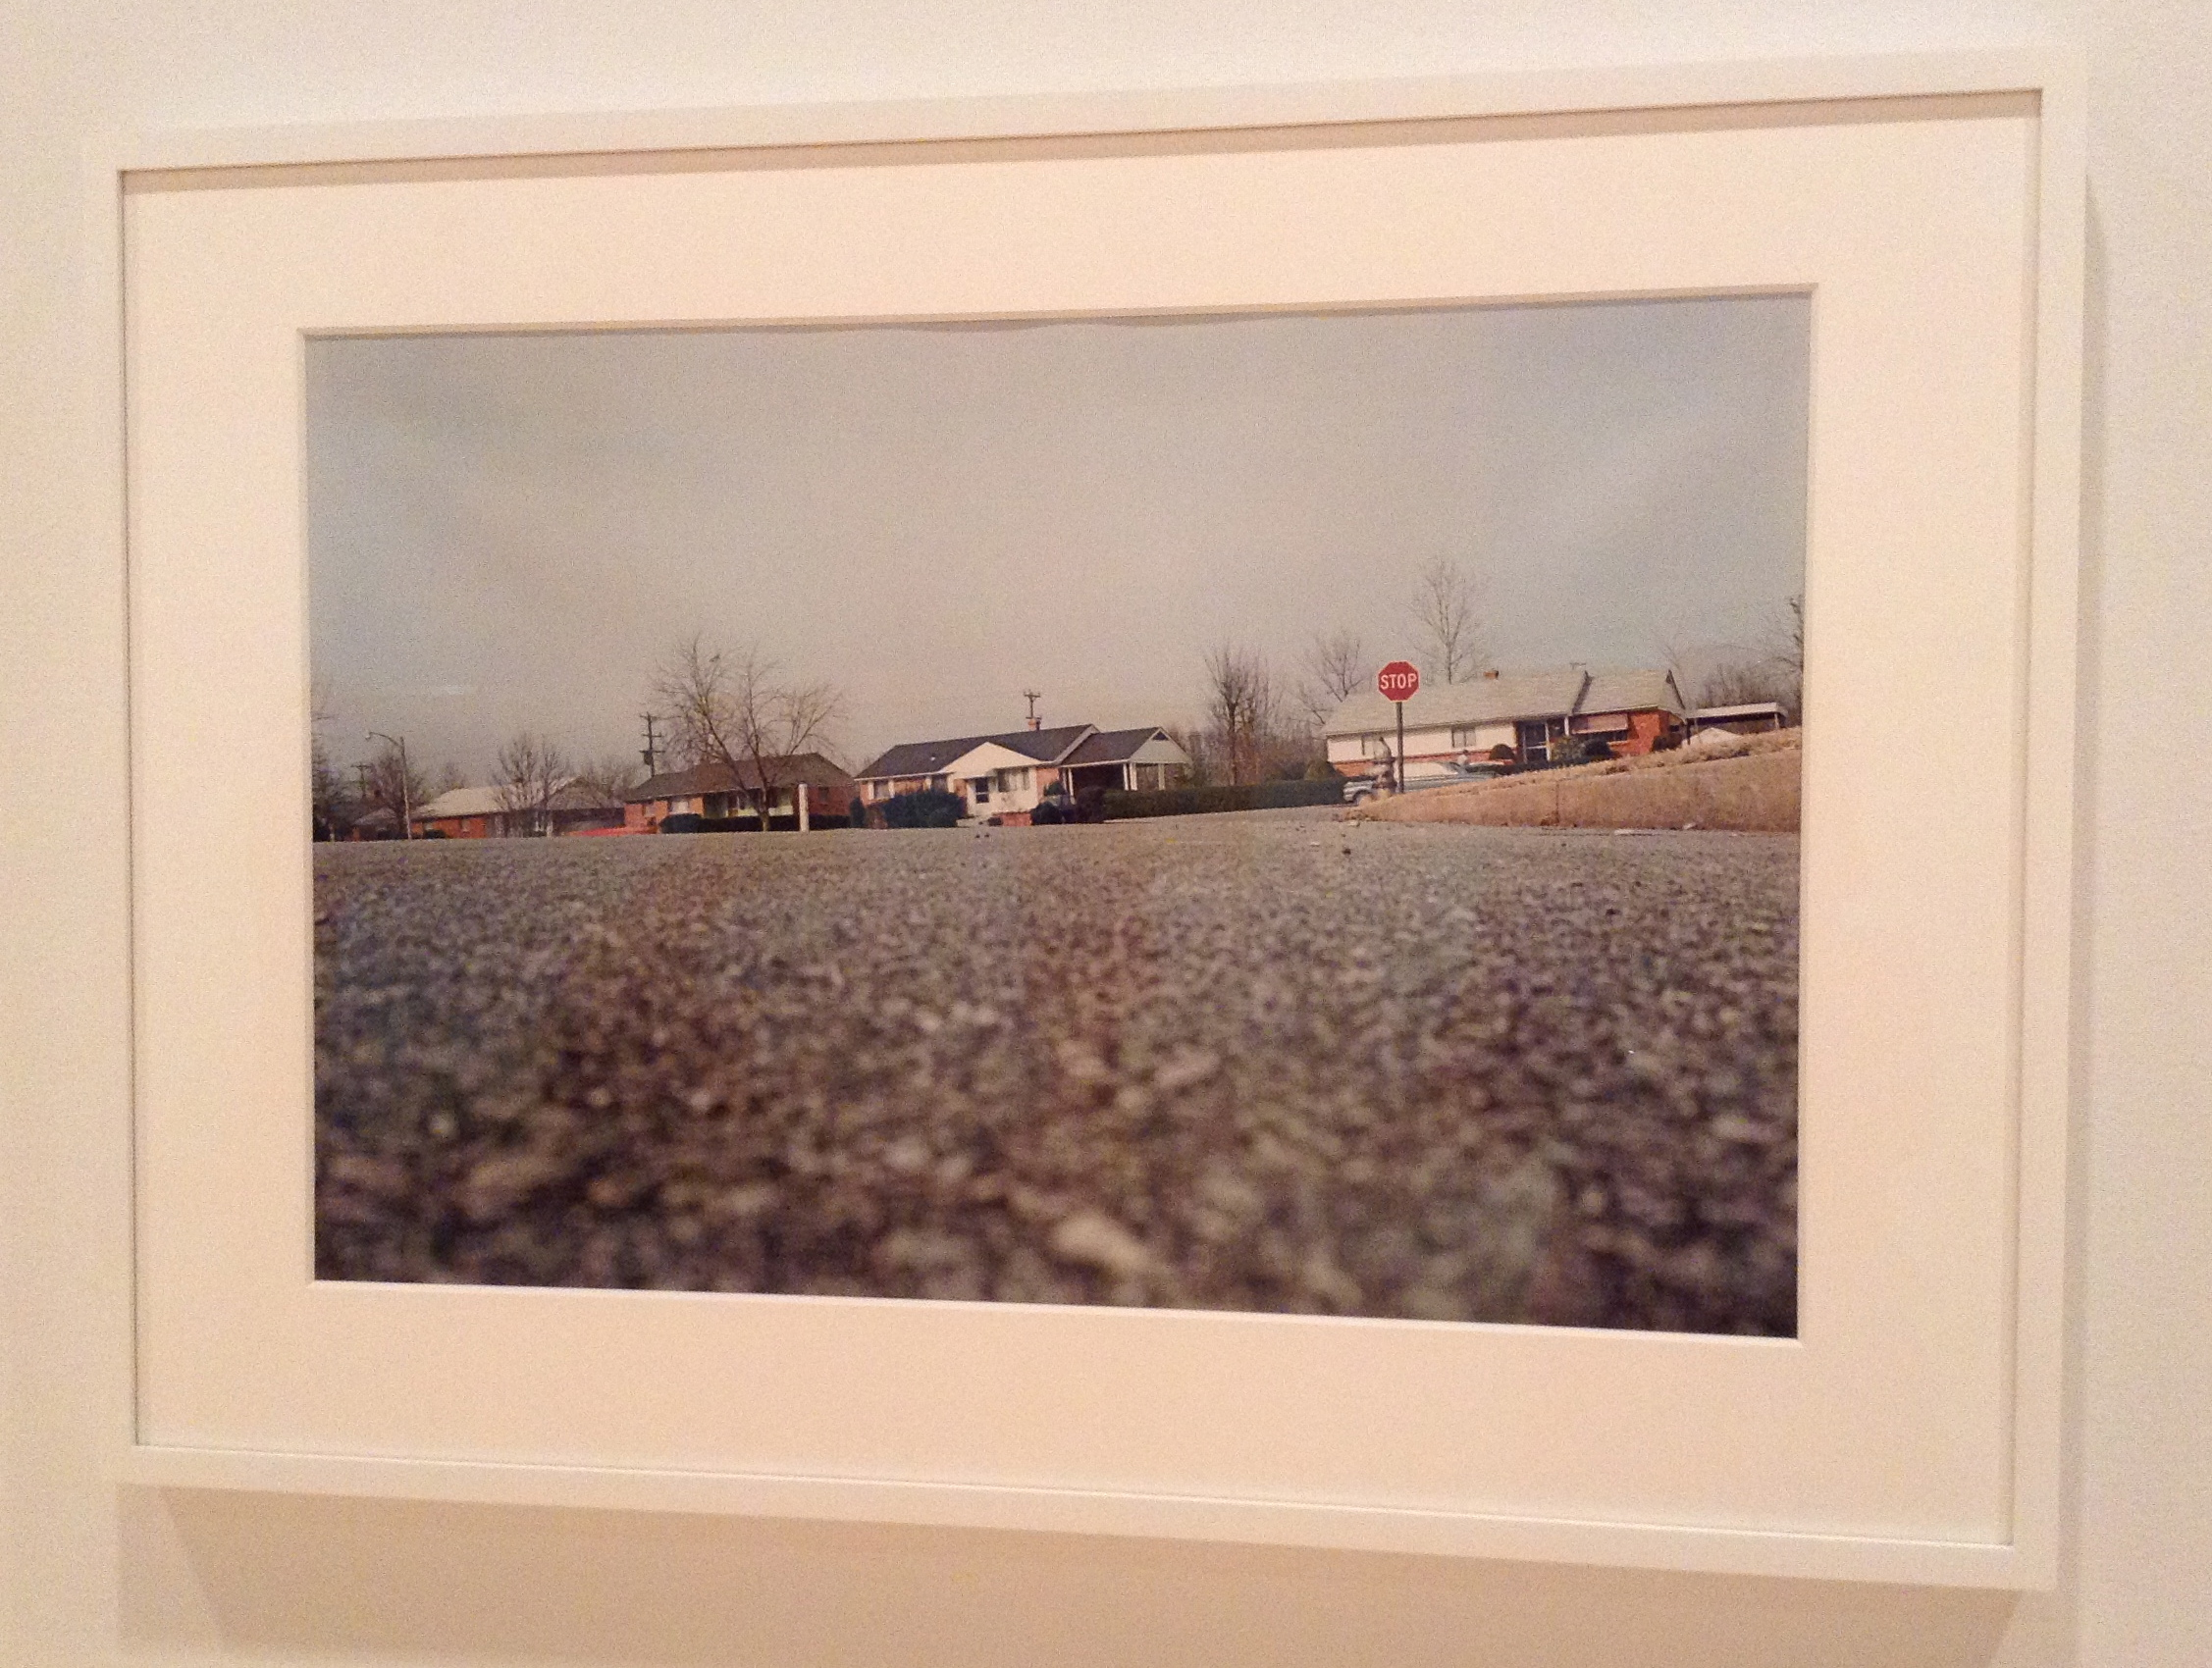 Untitled (Ground view of street) de William Eggleston, 1970